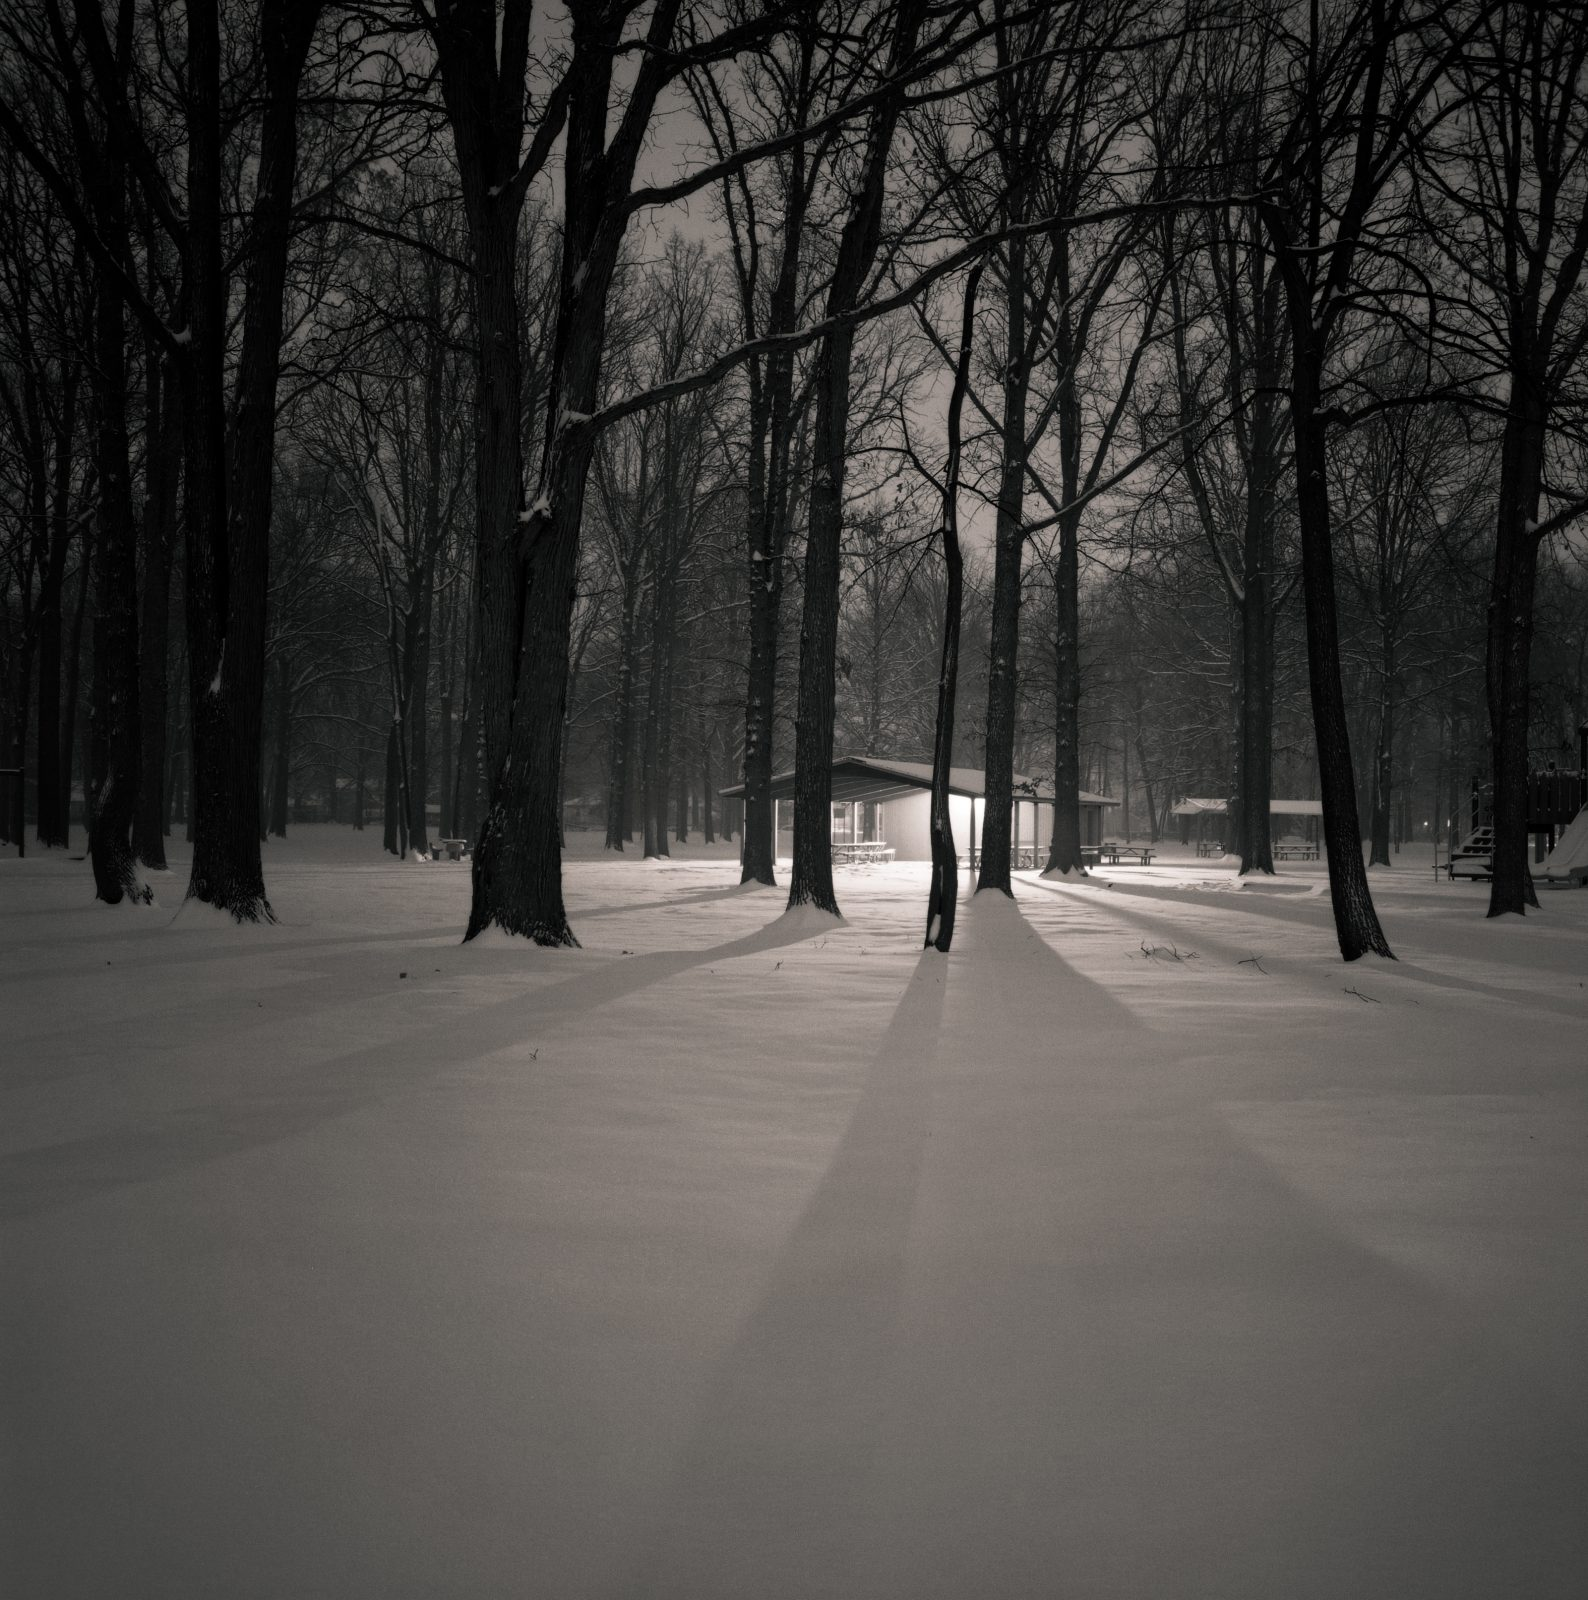 Black and white photo of a park at night